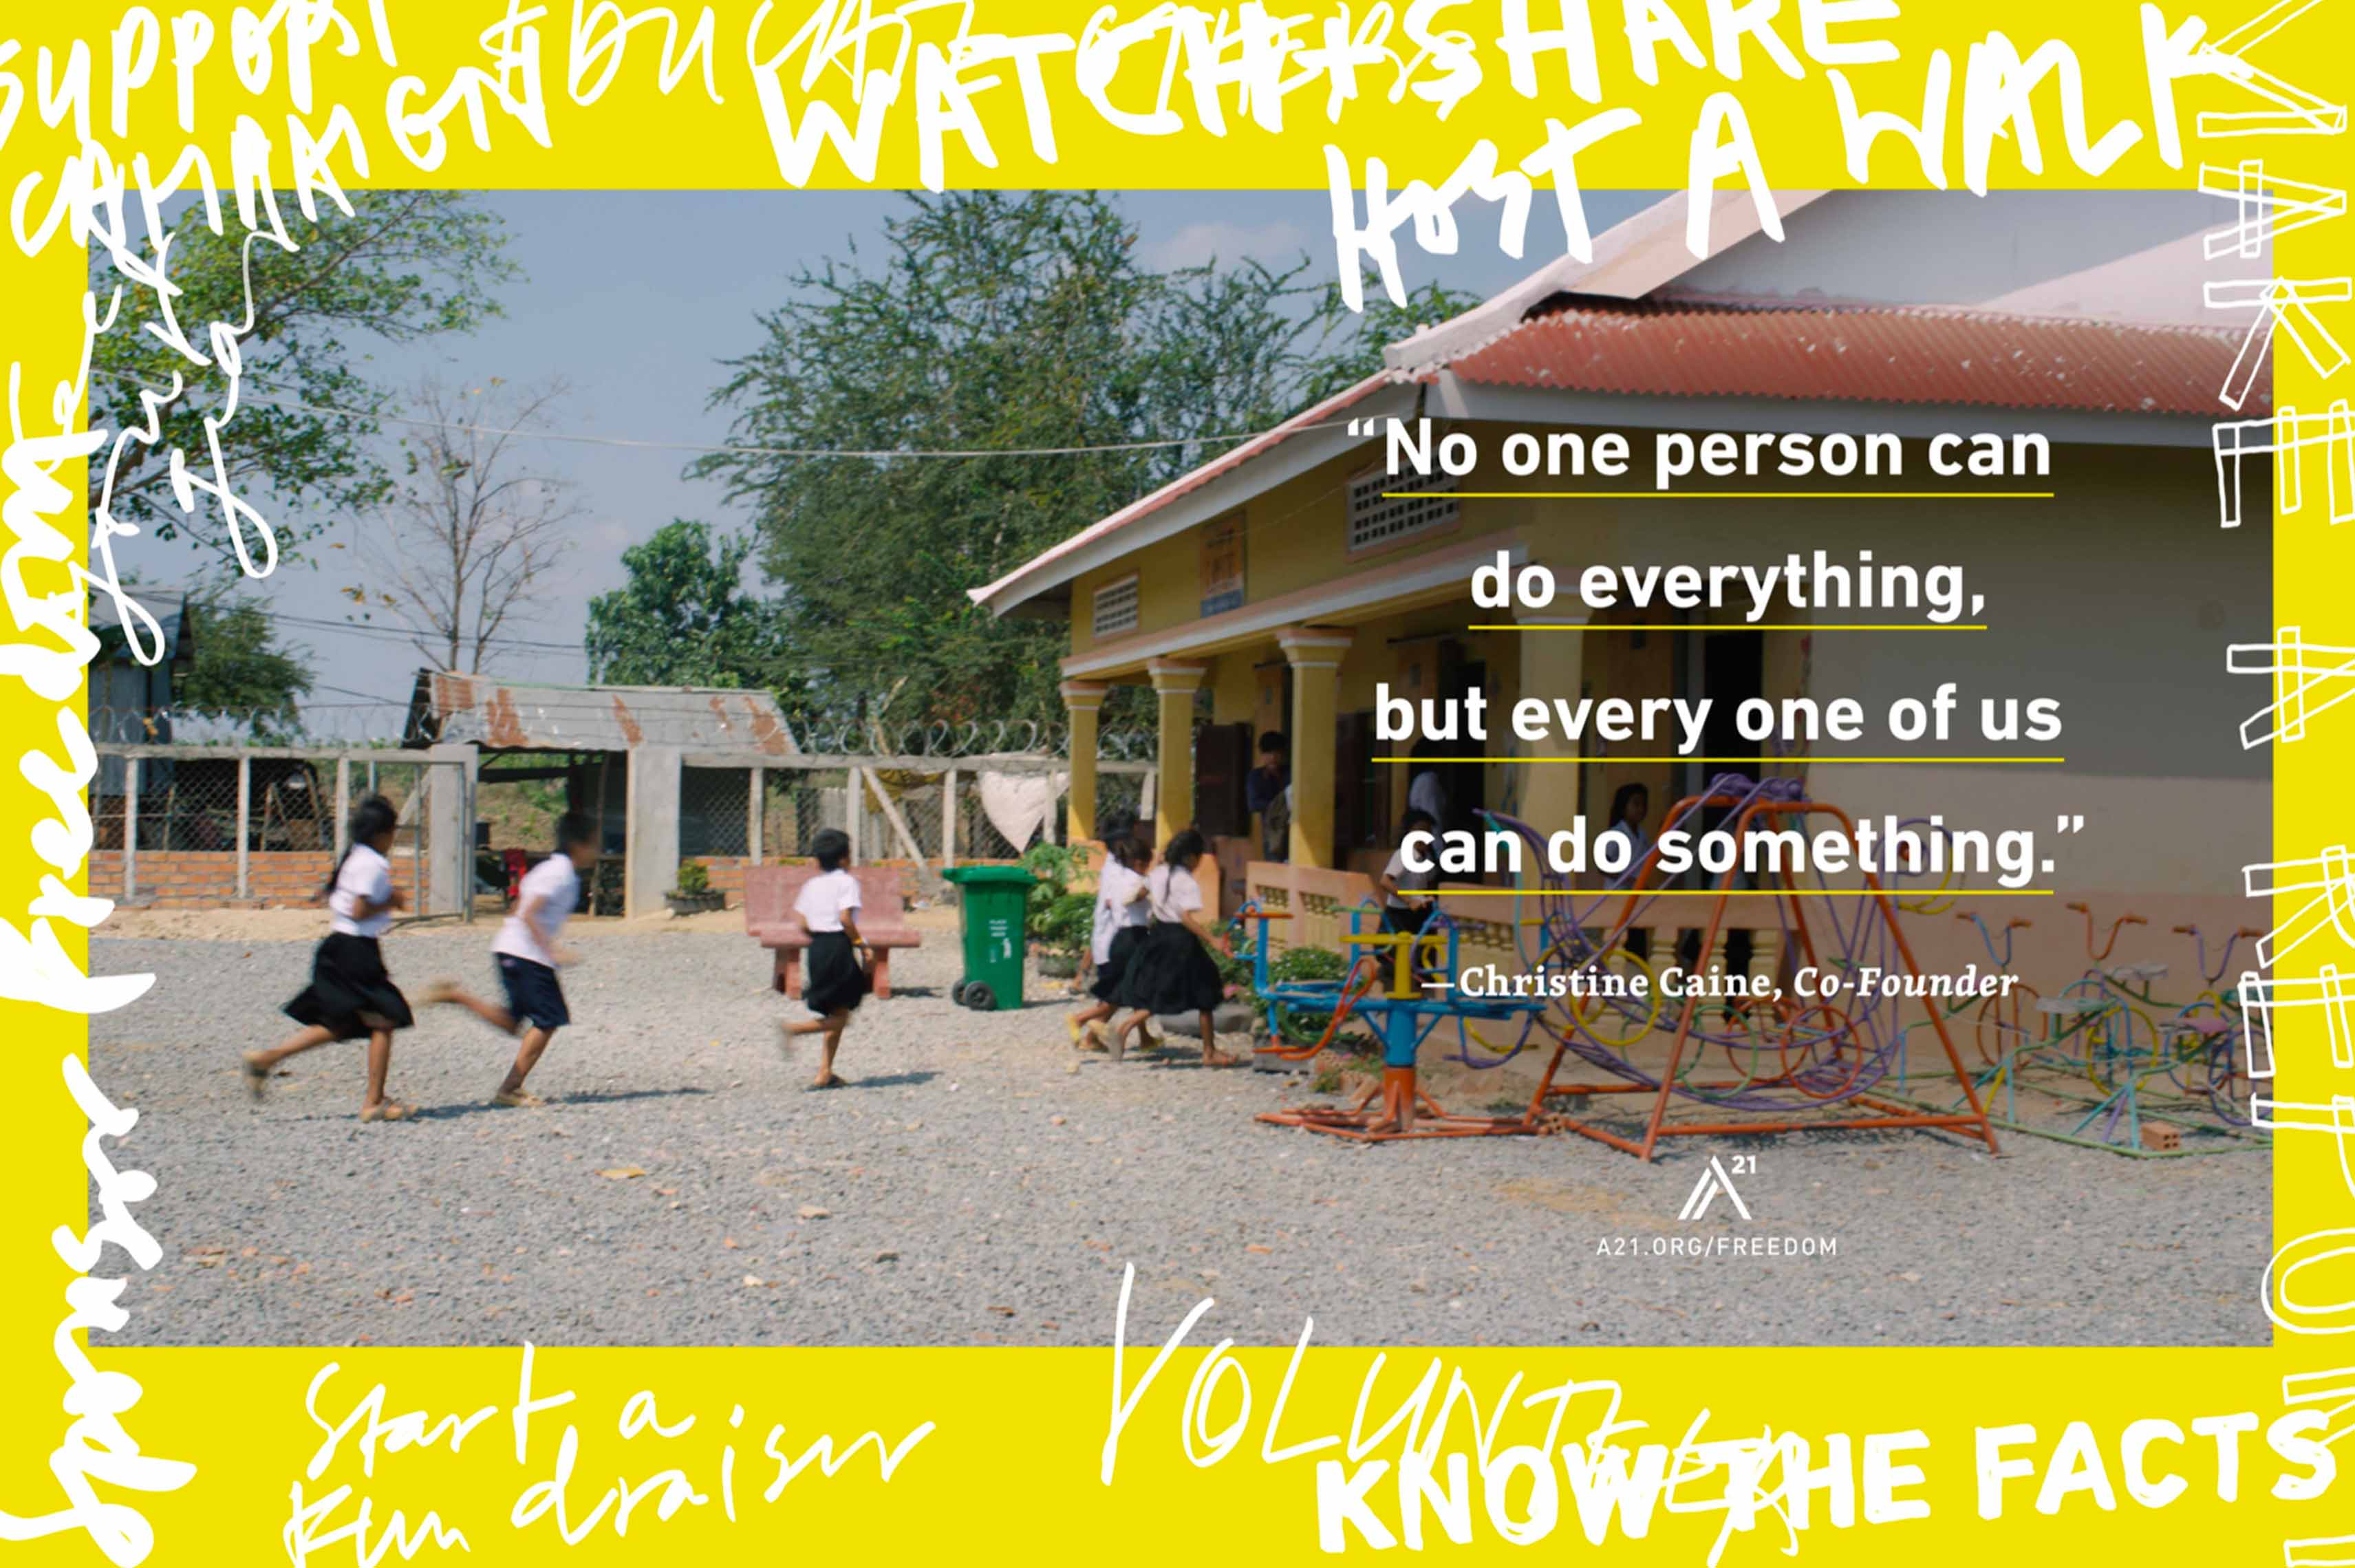 Poster 11: No one person can do everything, but every one of us can do something. – Christine Caine, Co-Founder